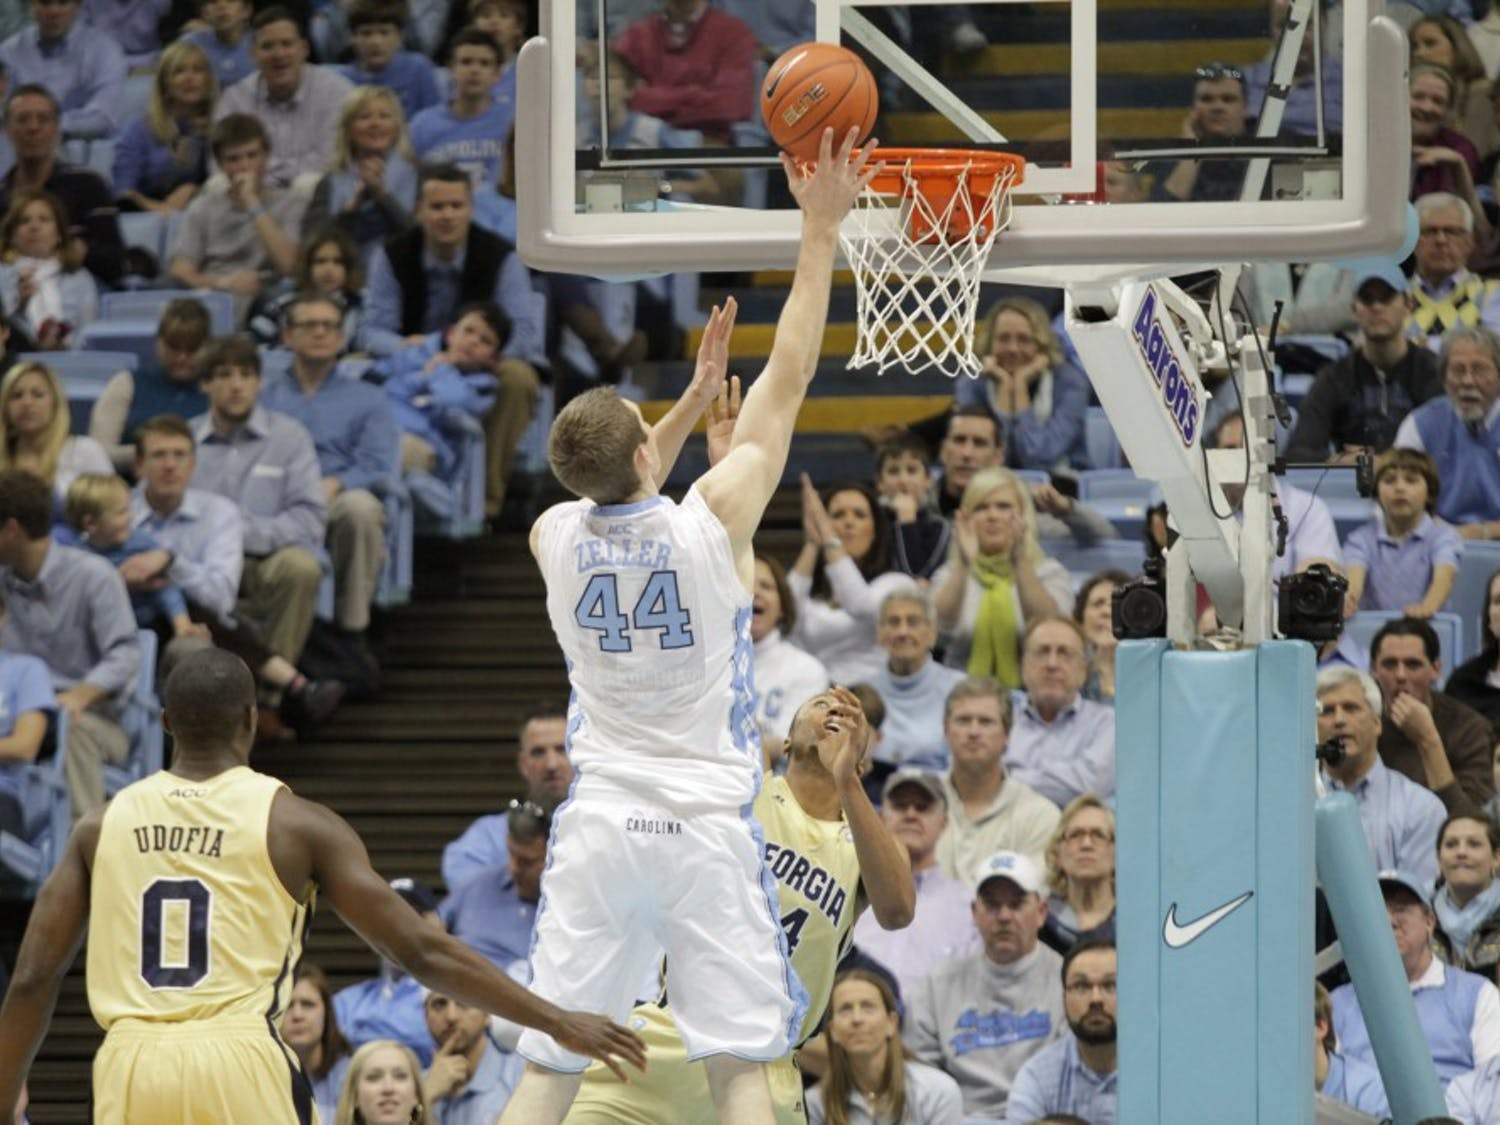 Men's basketball vs. Georgia Tech on Sunday, January 29, 2012 at the Dean Smith Center in Chapel Hill, NC.